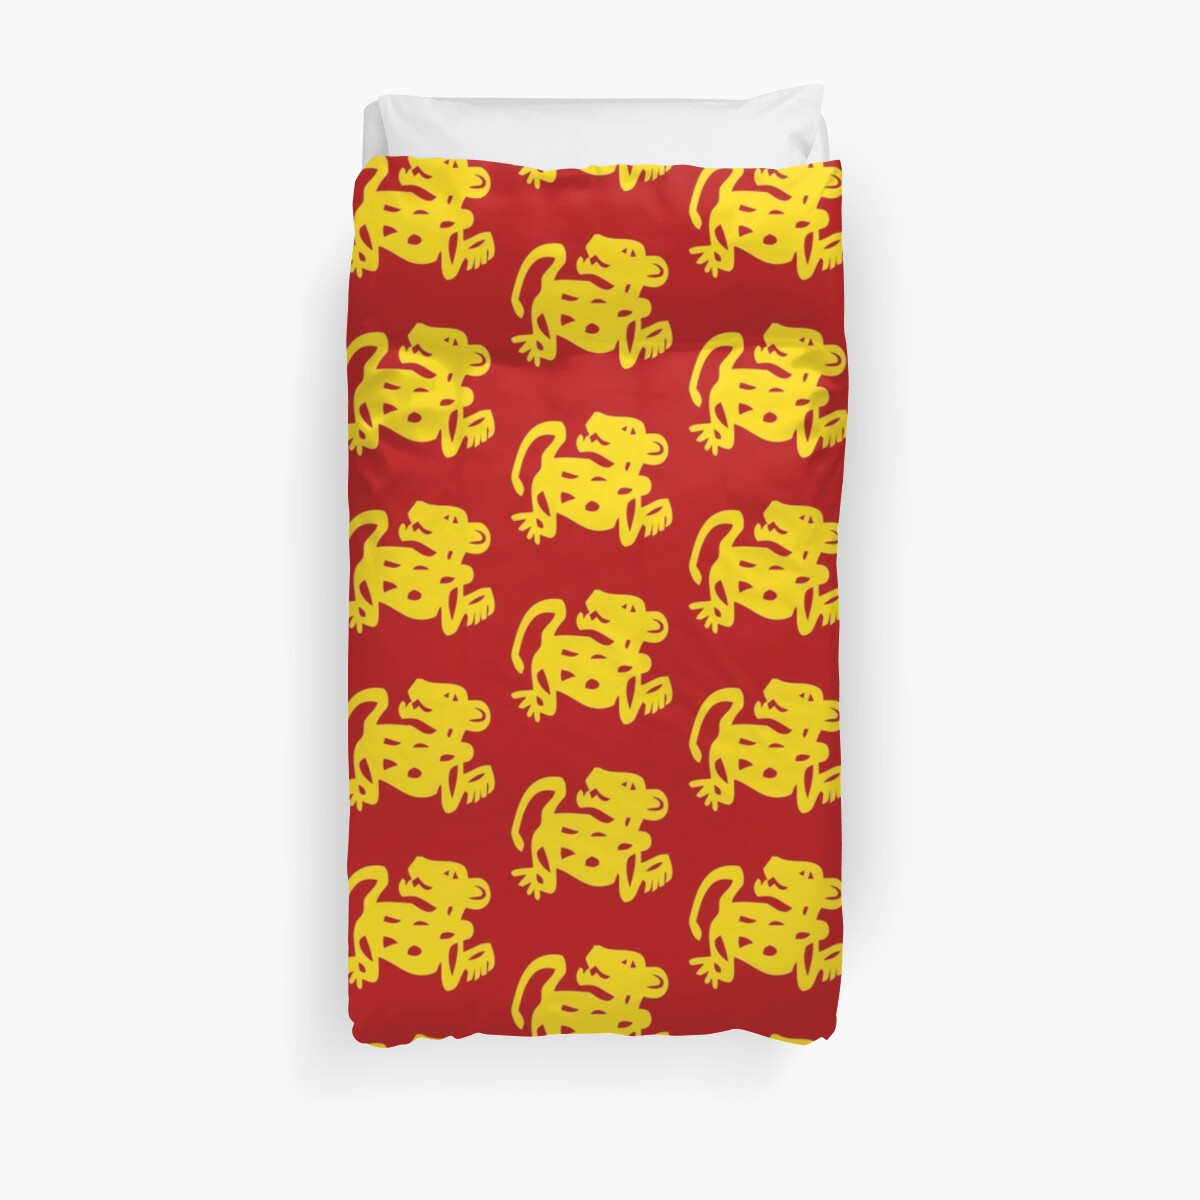 red jaguars legends of the hidden temple shirt duvet covers by